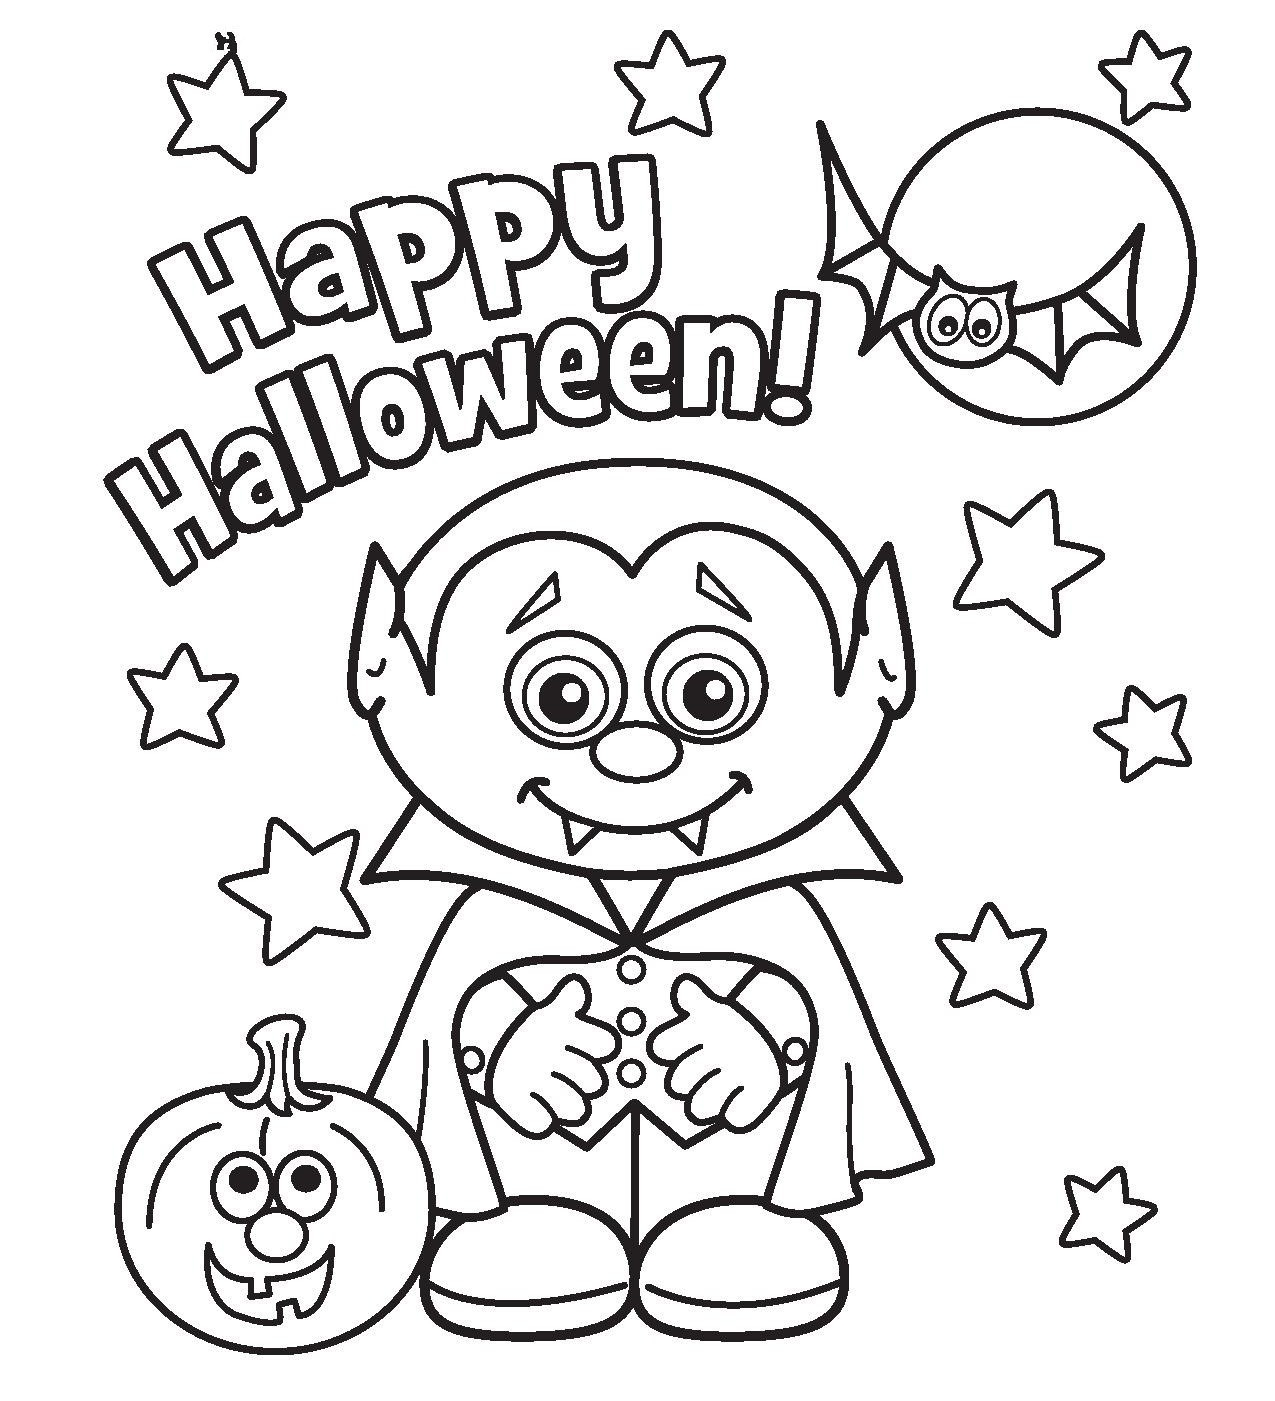 1275x1401 New Printable Halloween Coloring Pages For Kids Minion Pikachu